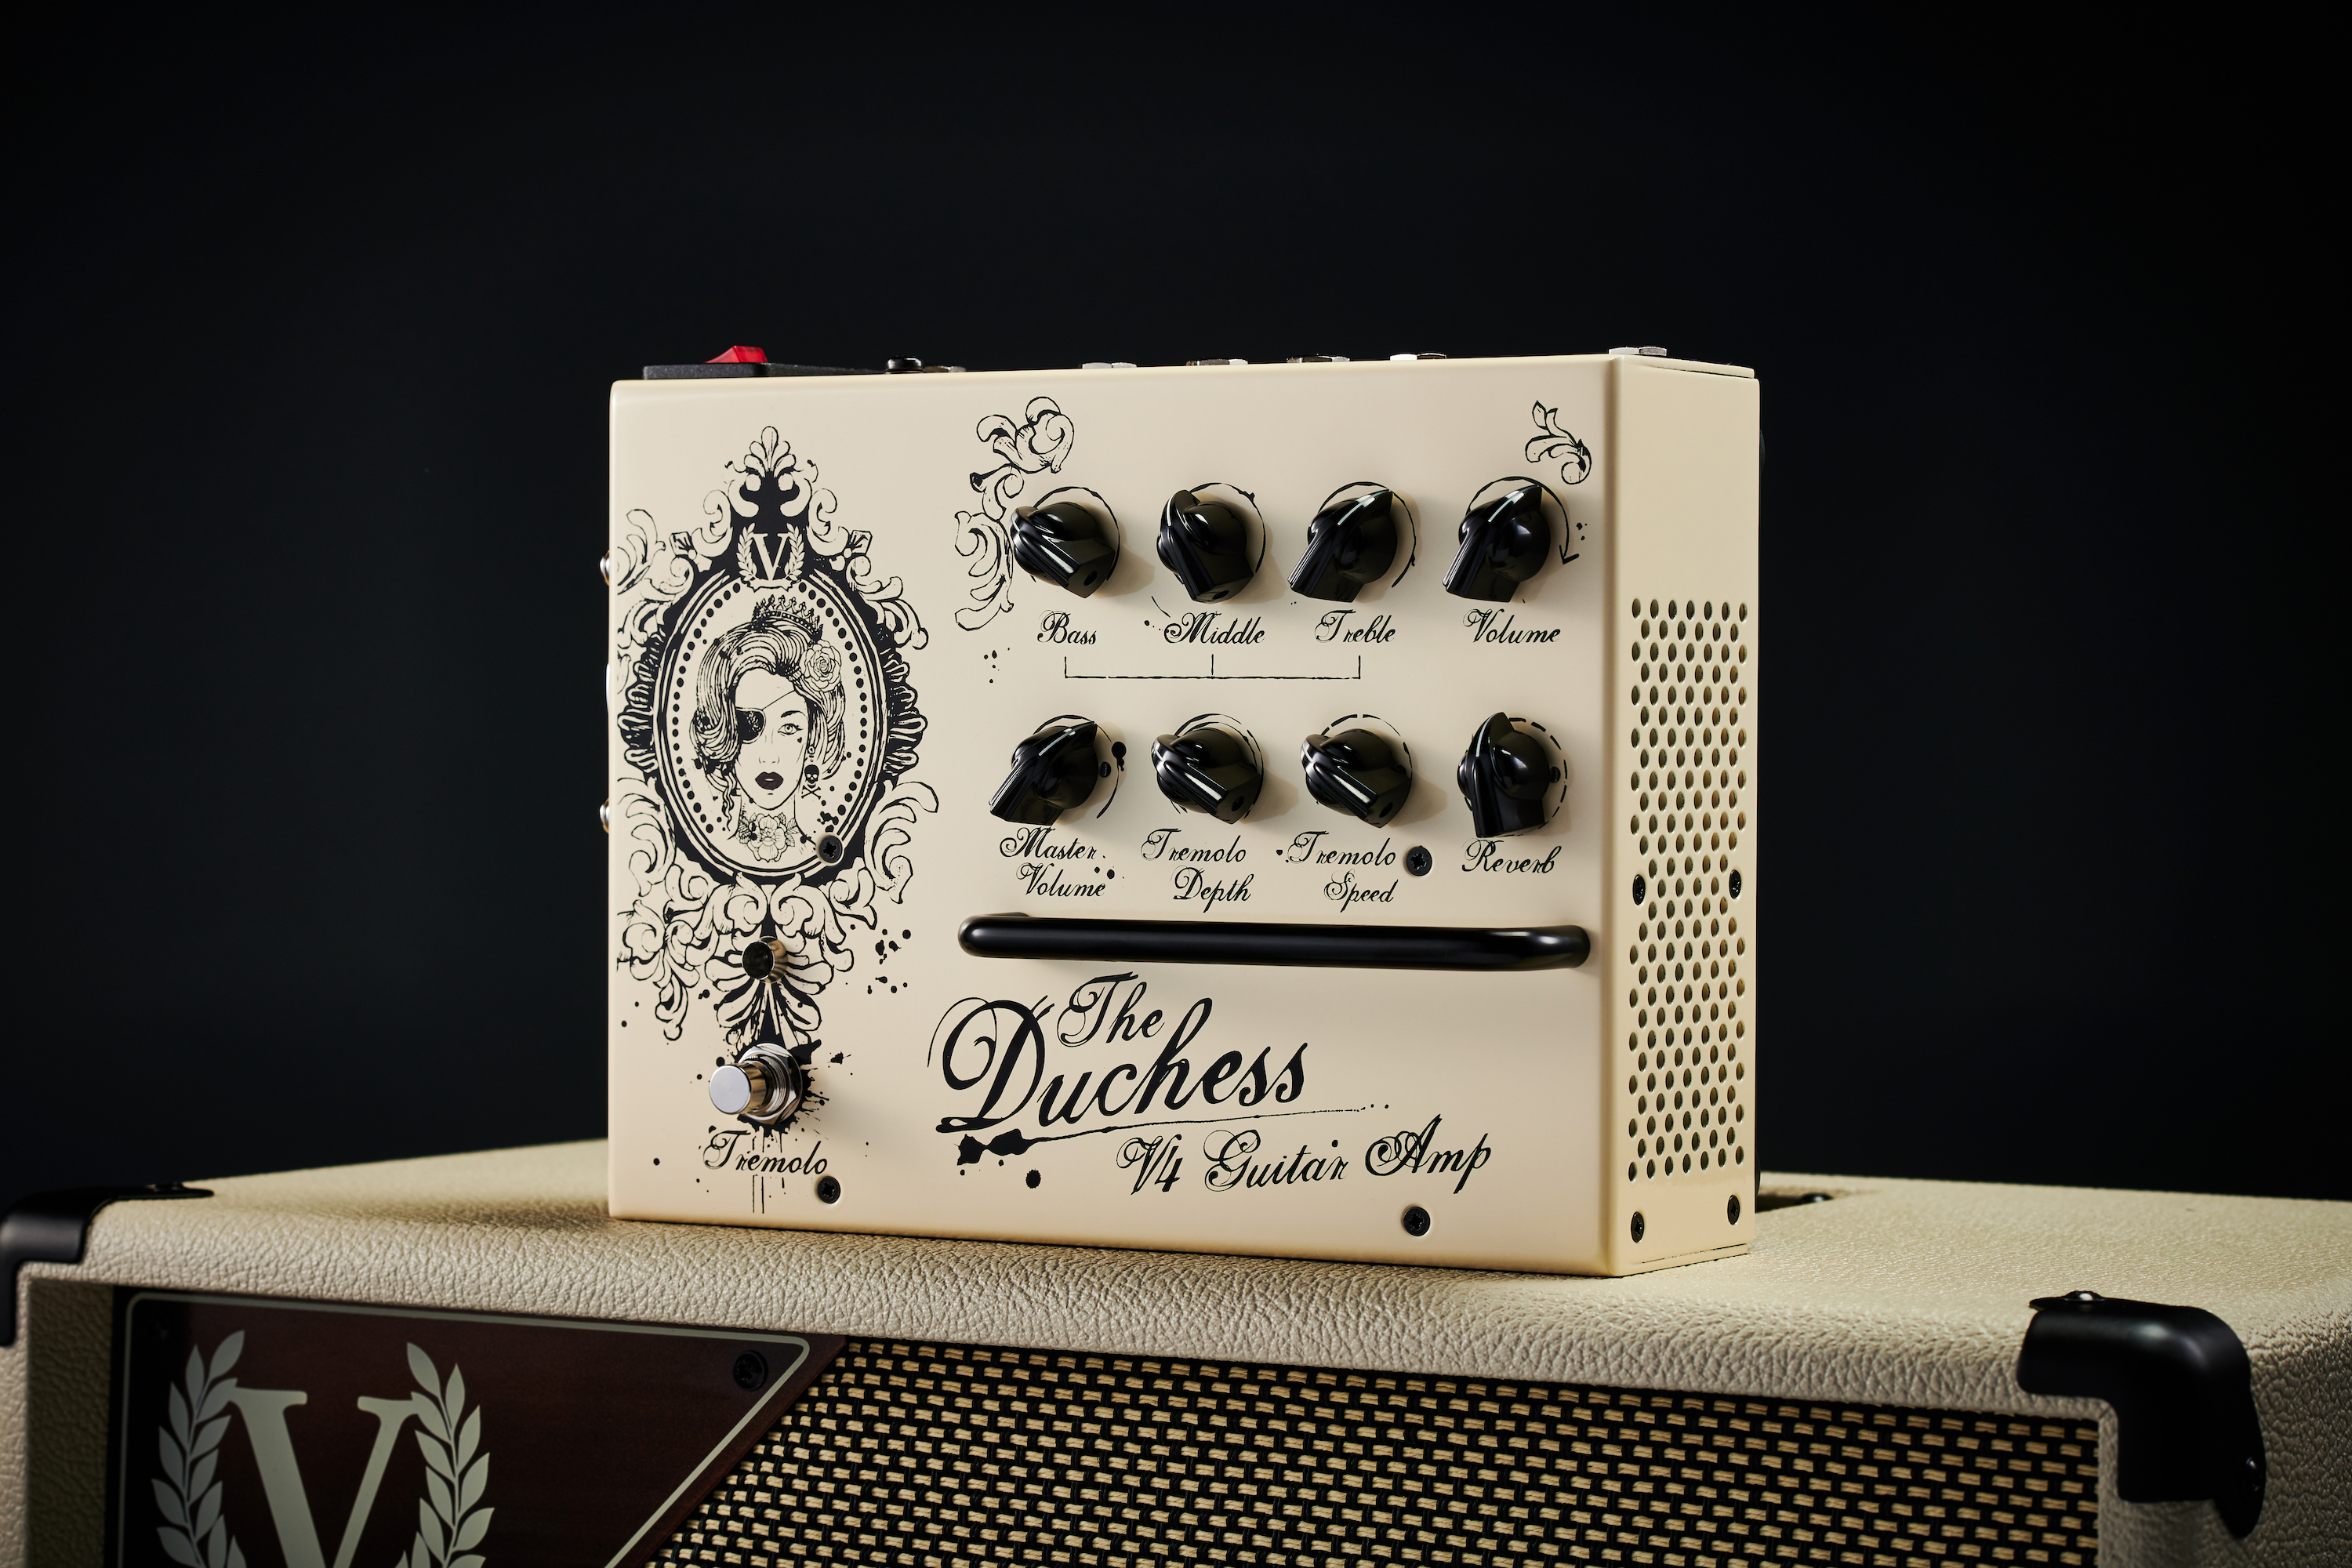 V4 The Duchess Guitar Amp